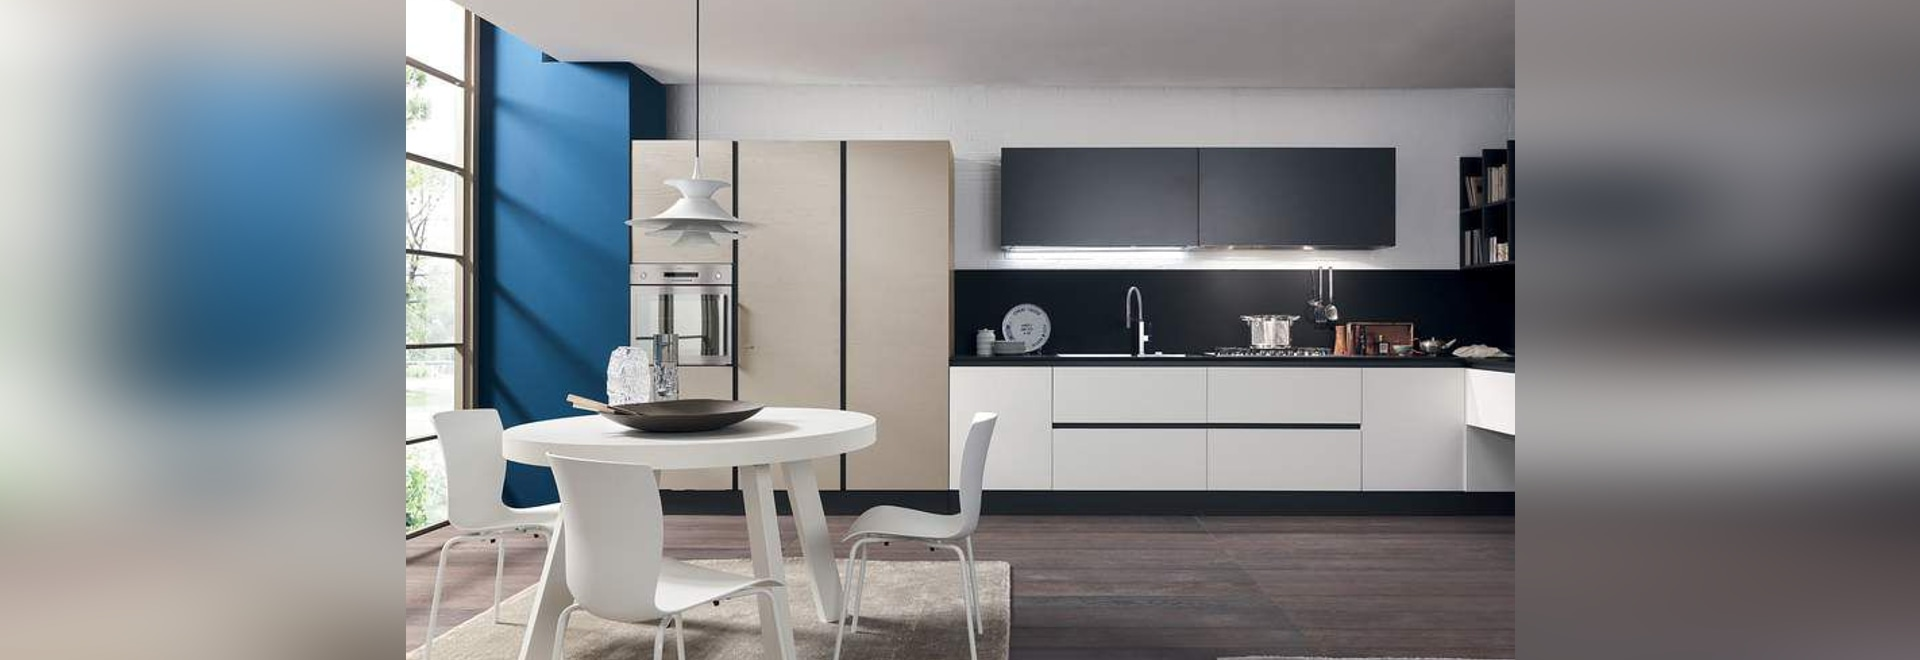 http://img.archiexpo.com/images_ae/projects/images-og/marina-line-febal-cucine-22071-9903275.jpg